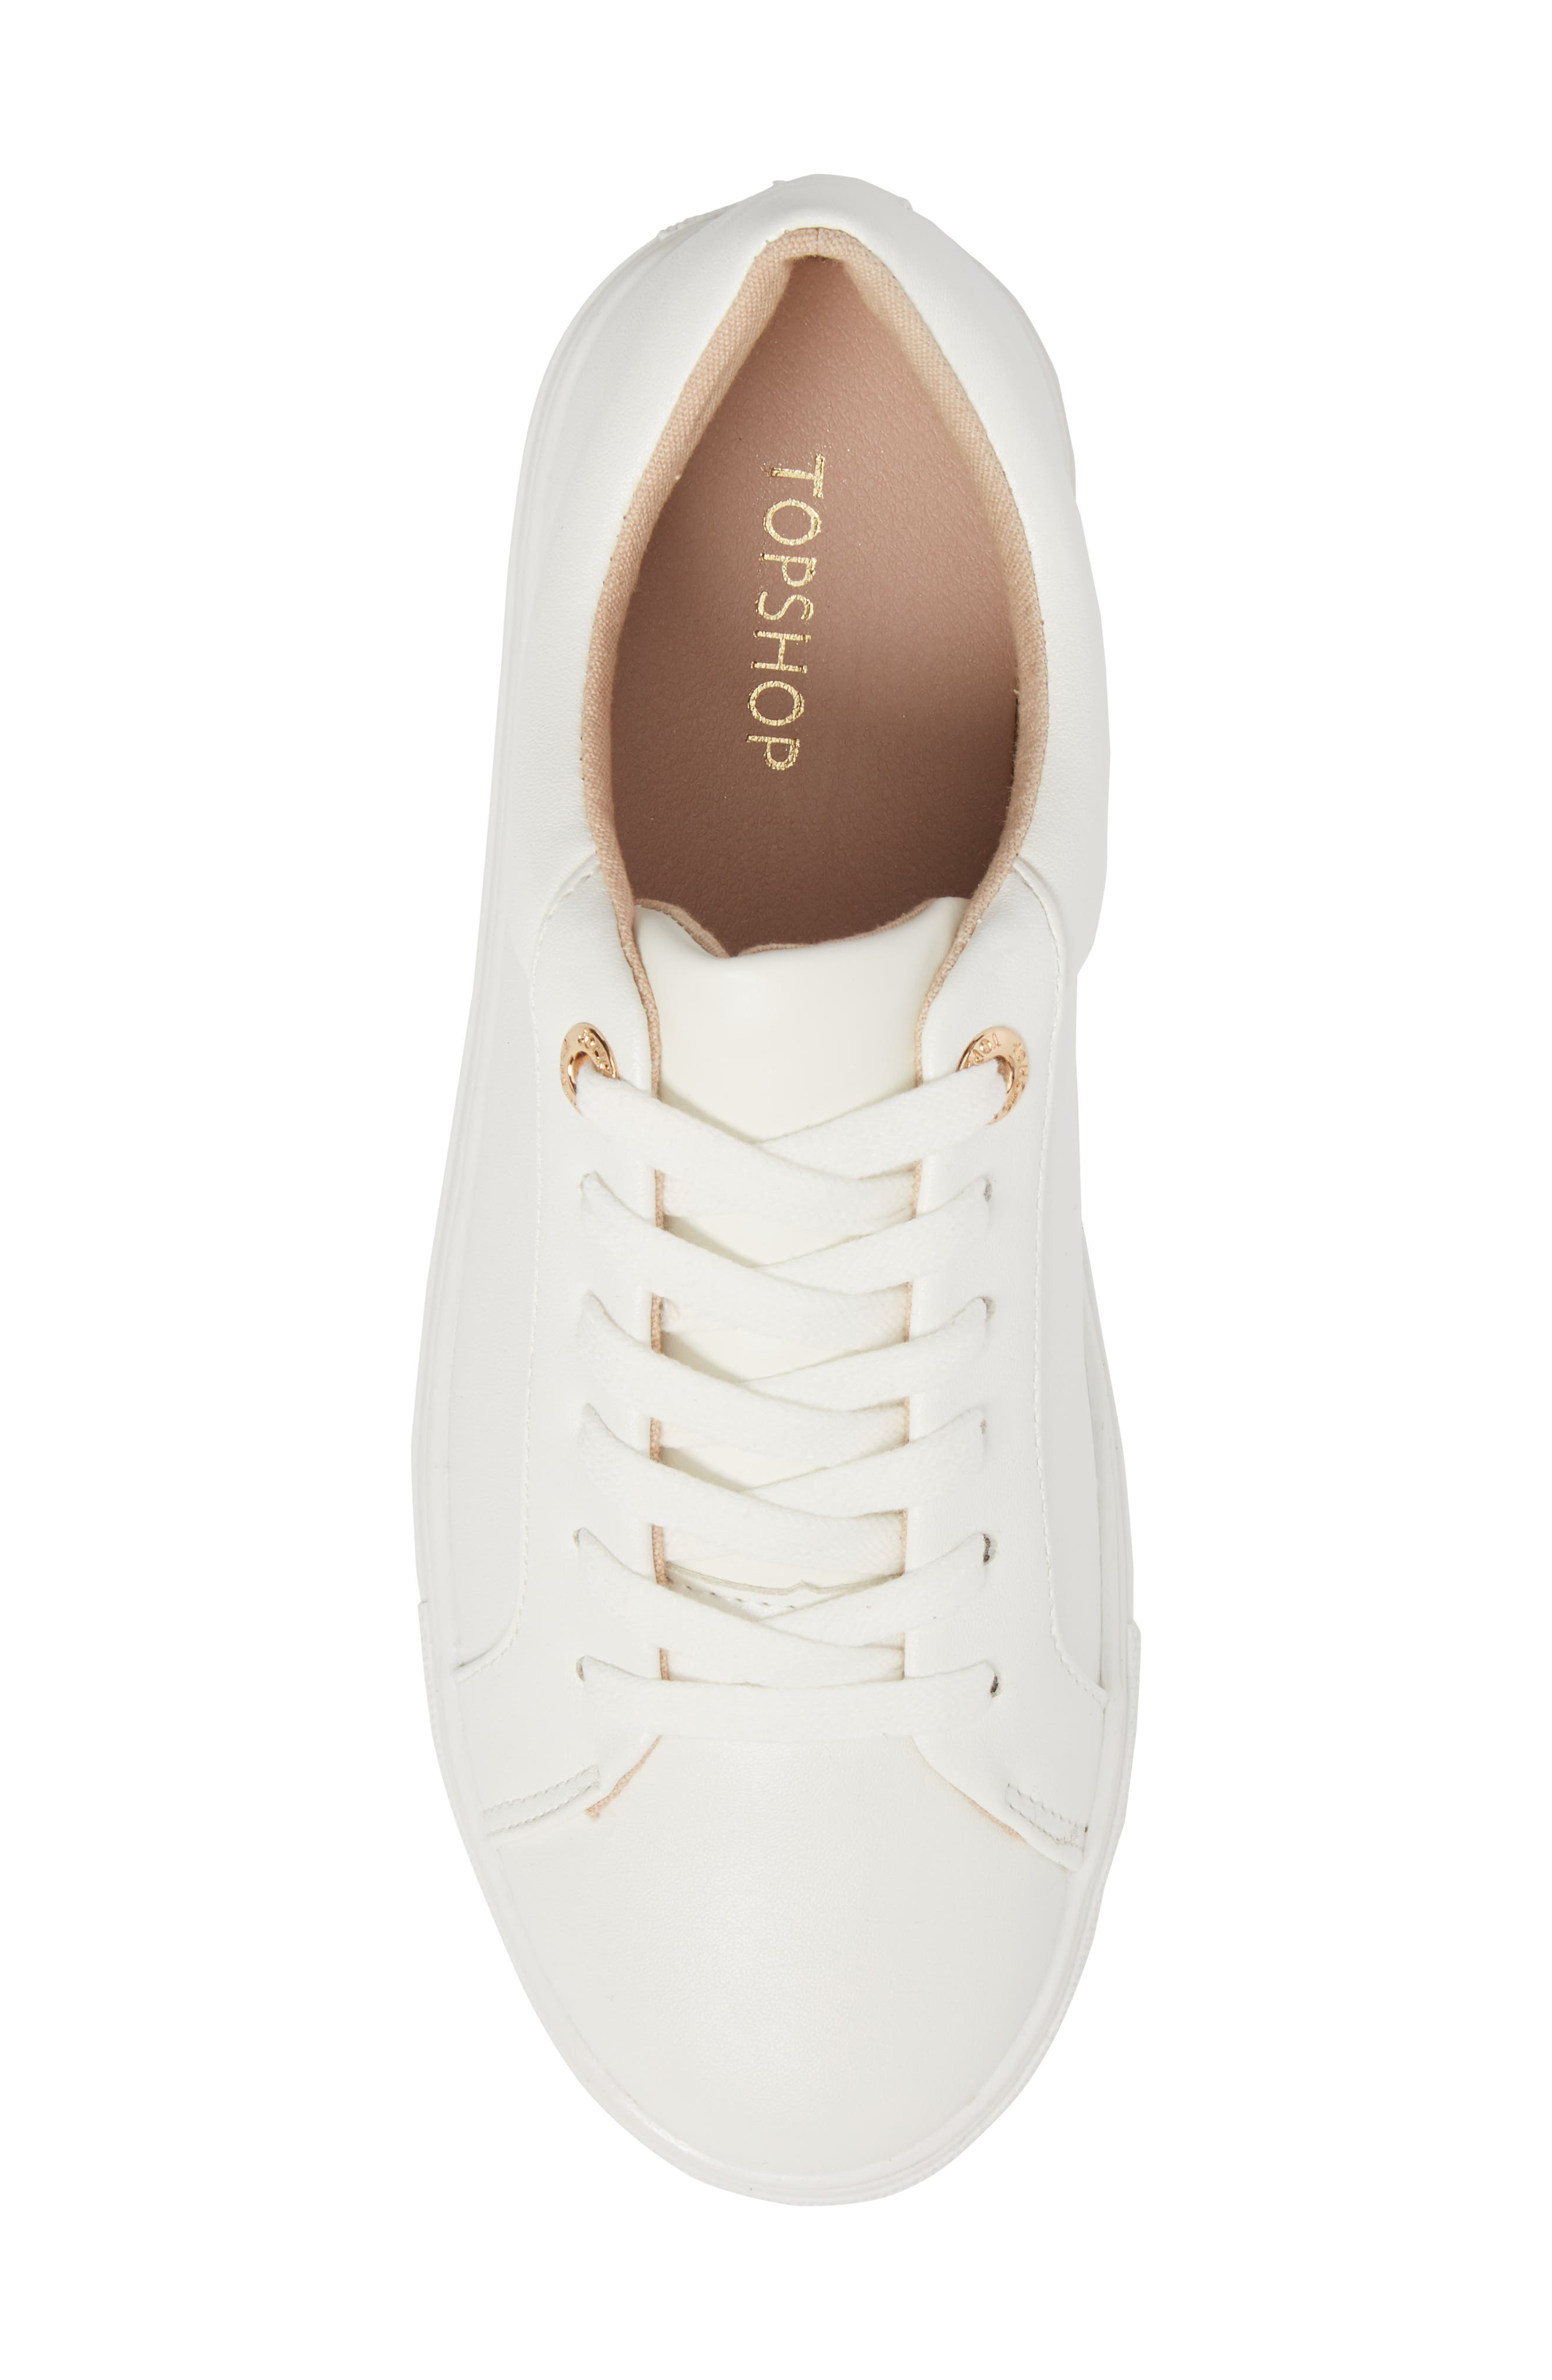 Cookie Low Top Sneaker,                             Alternate thumbnail 5, color,                             White